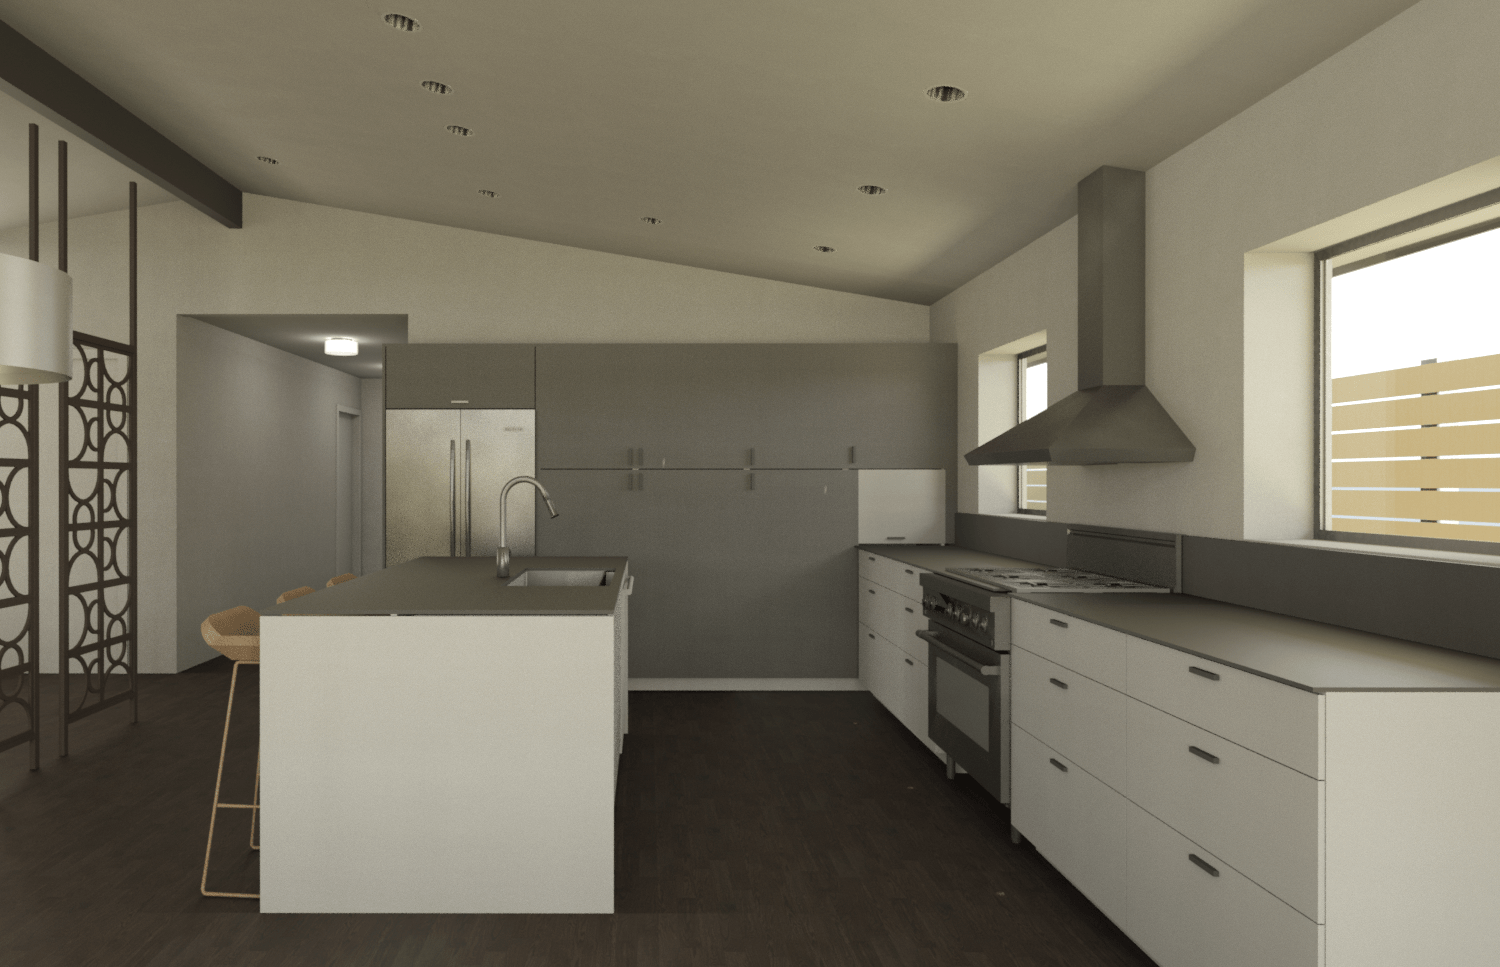 dexter kitchen movable cabinets the cadence design studio 3d computer rendering of proposed